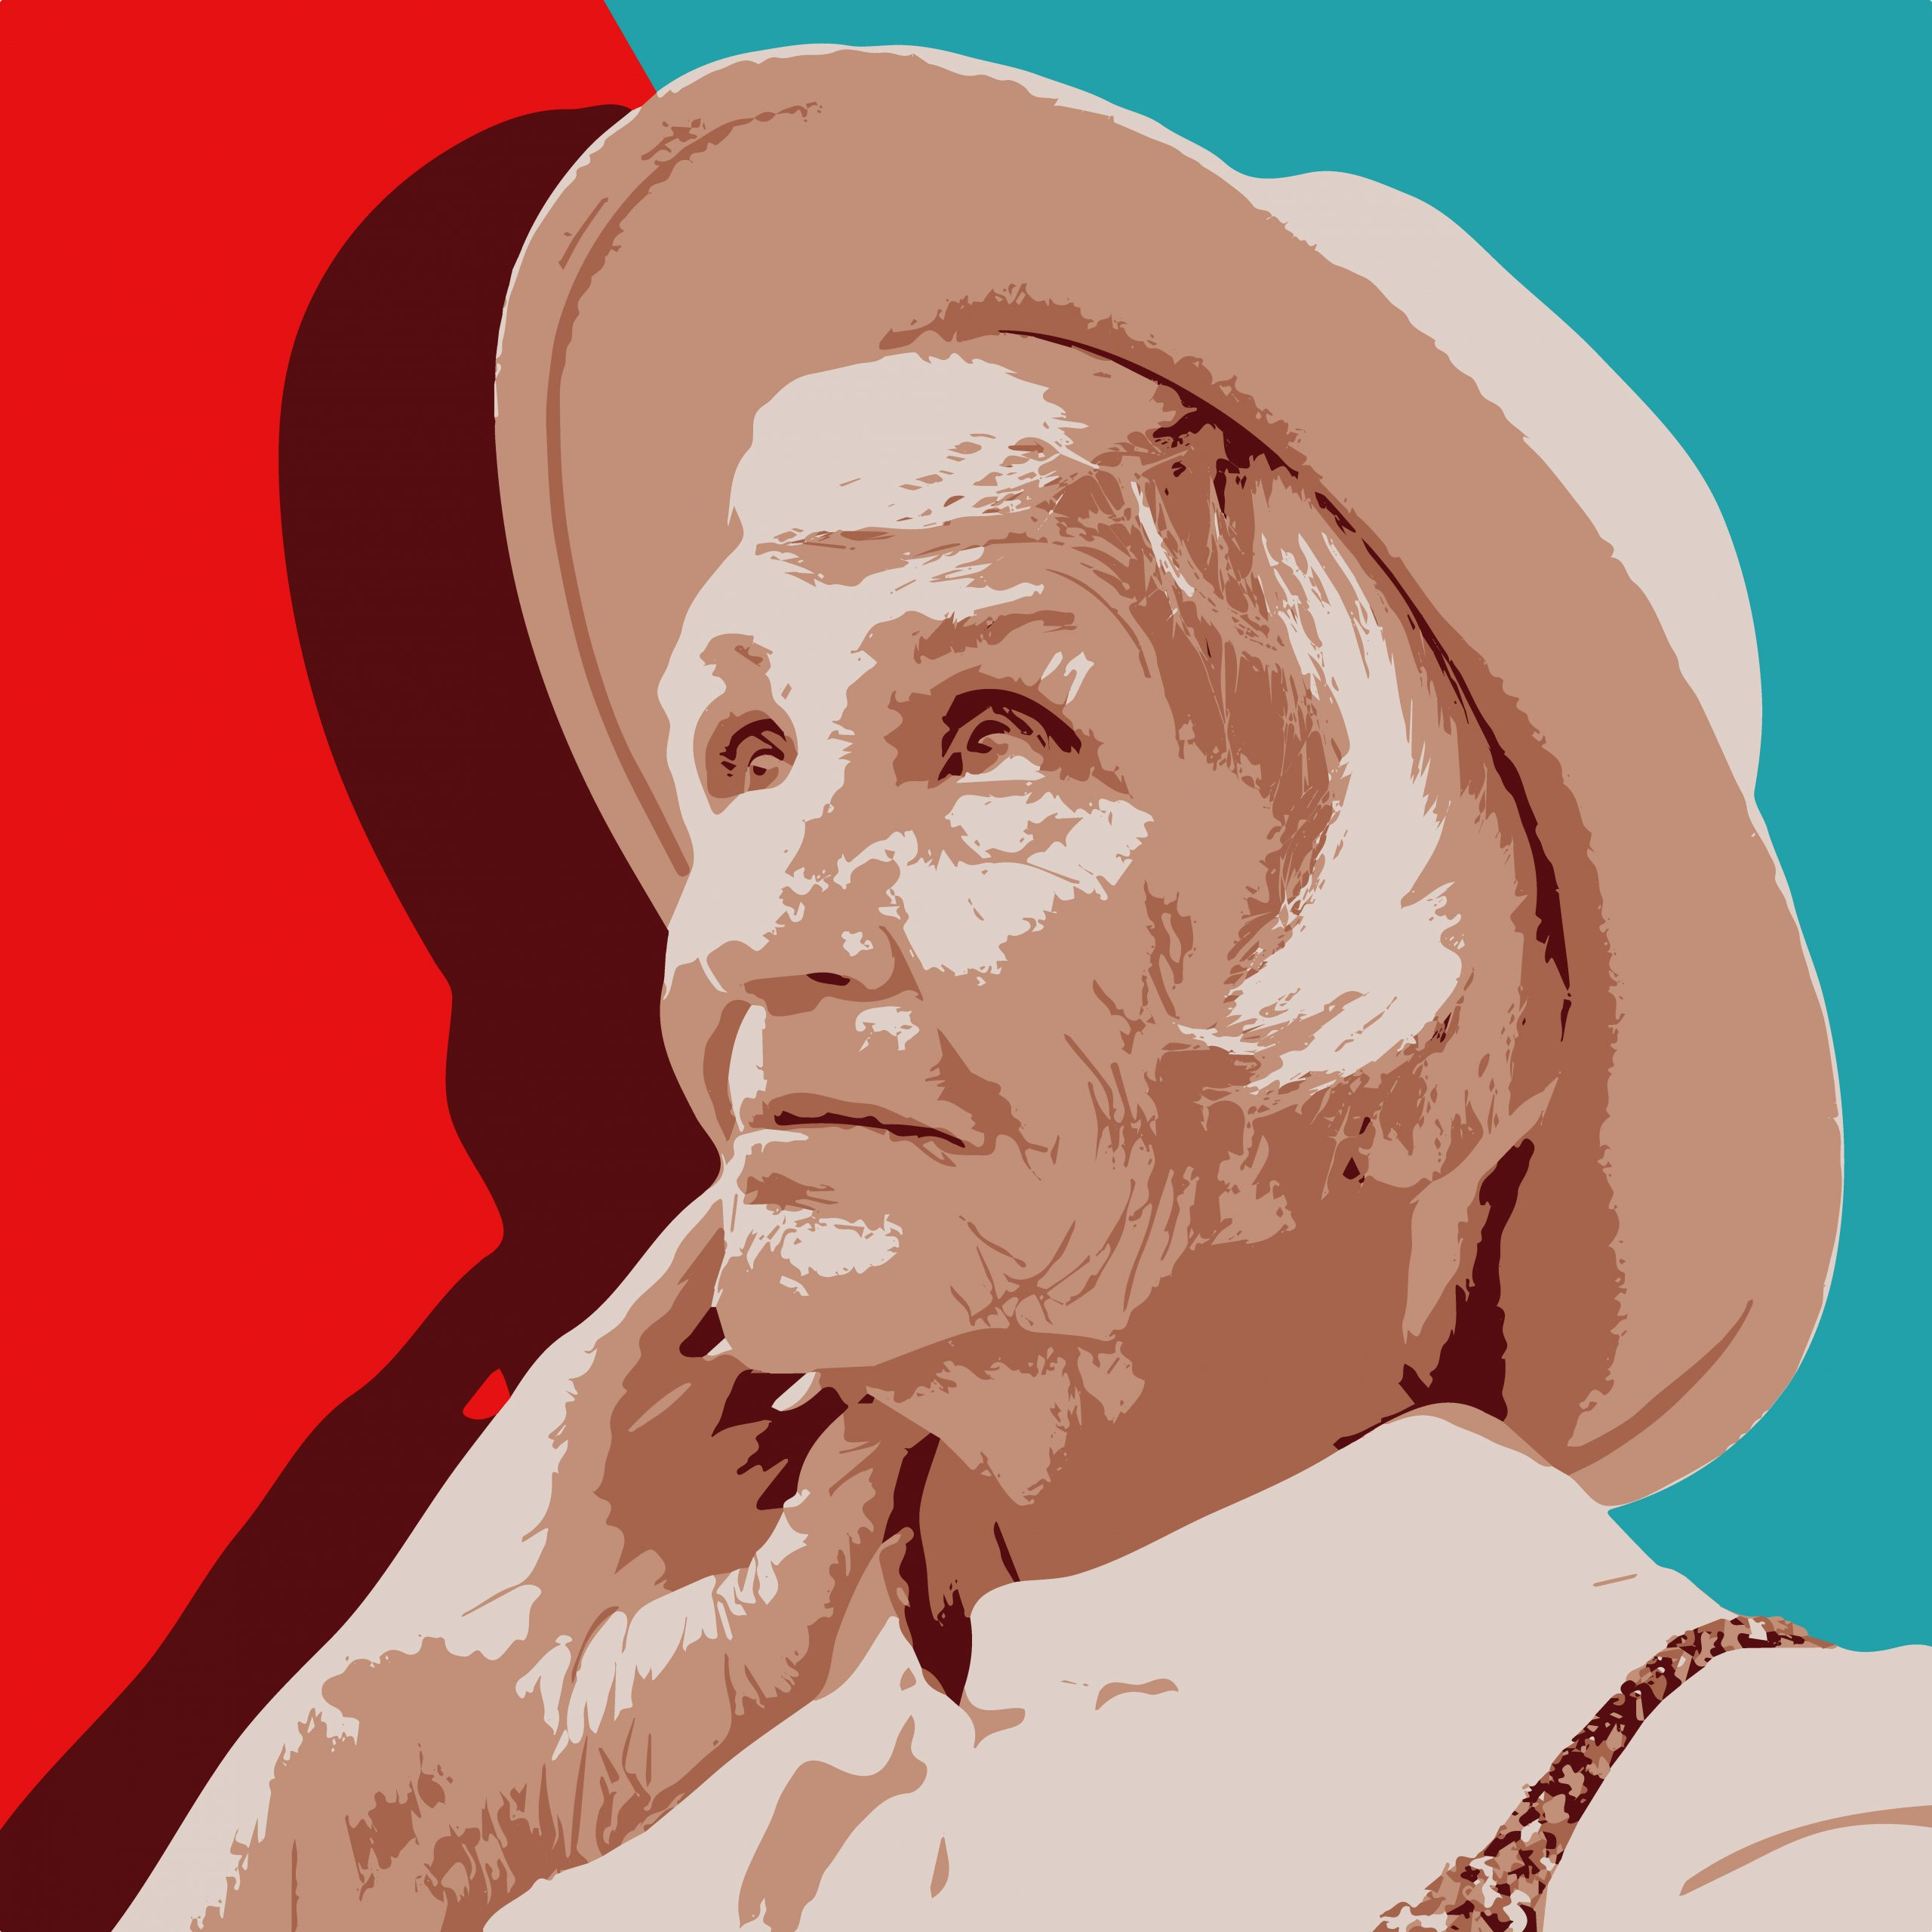 Portrait illustration of an old woman